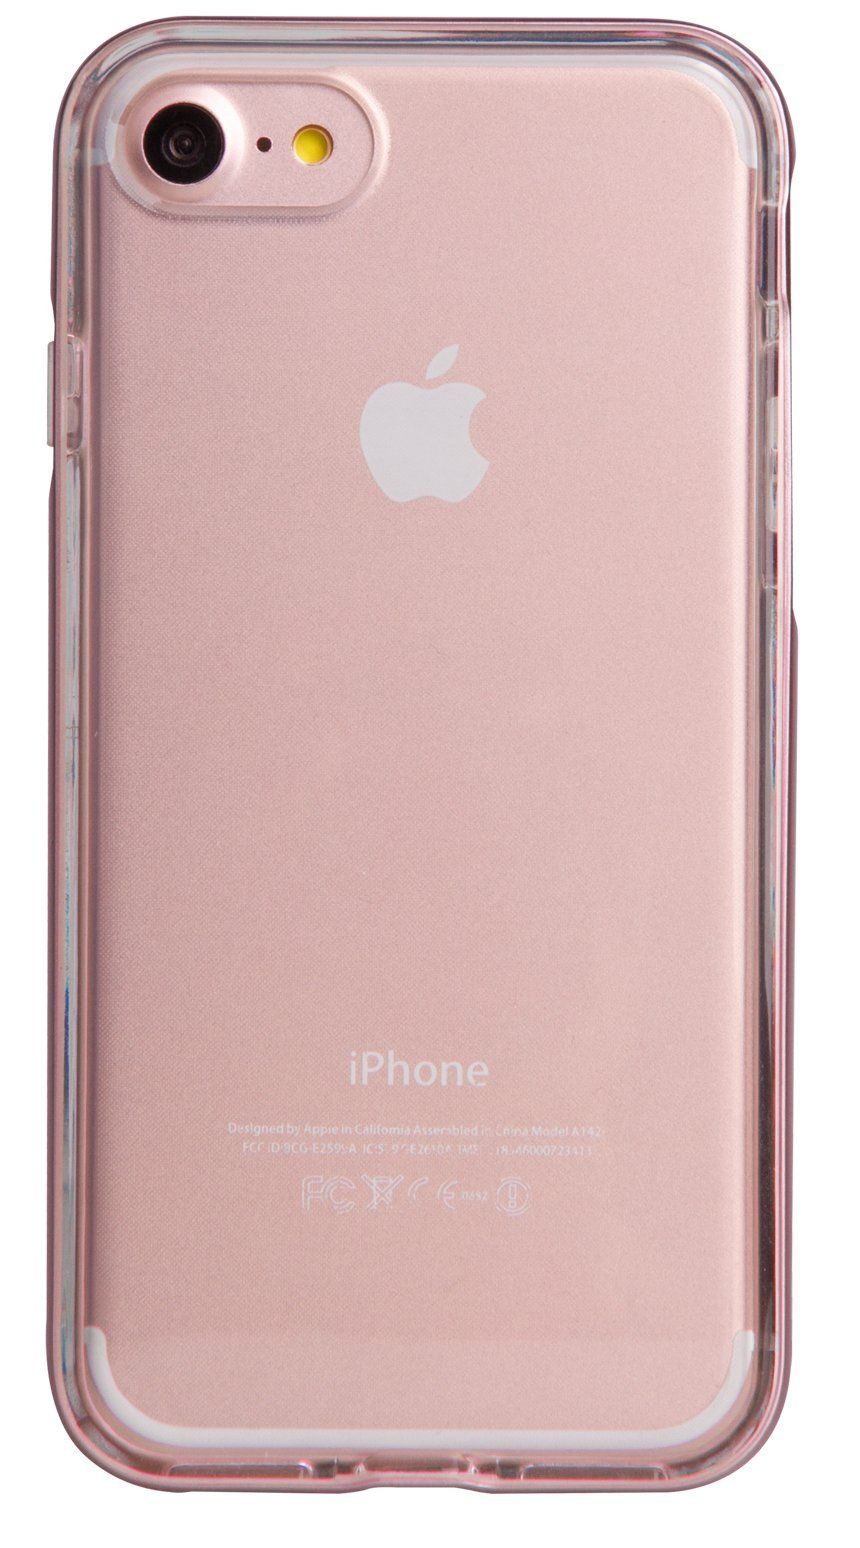 VIVA iPhone 7 Airefit Borde Case TPU Rose Gold, картинка 1